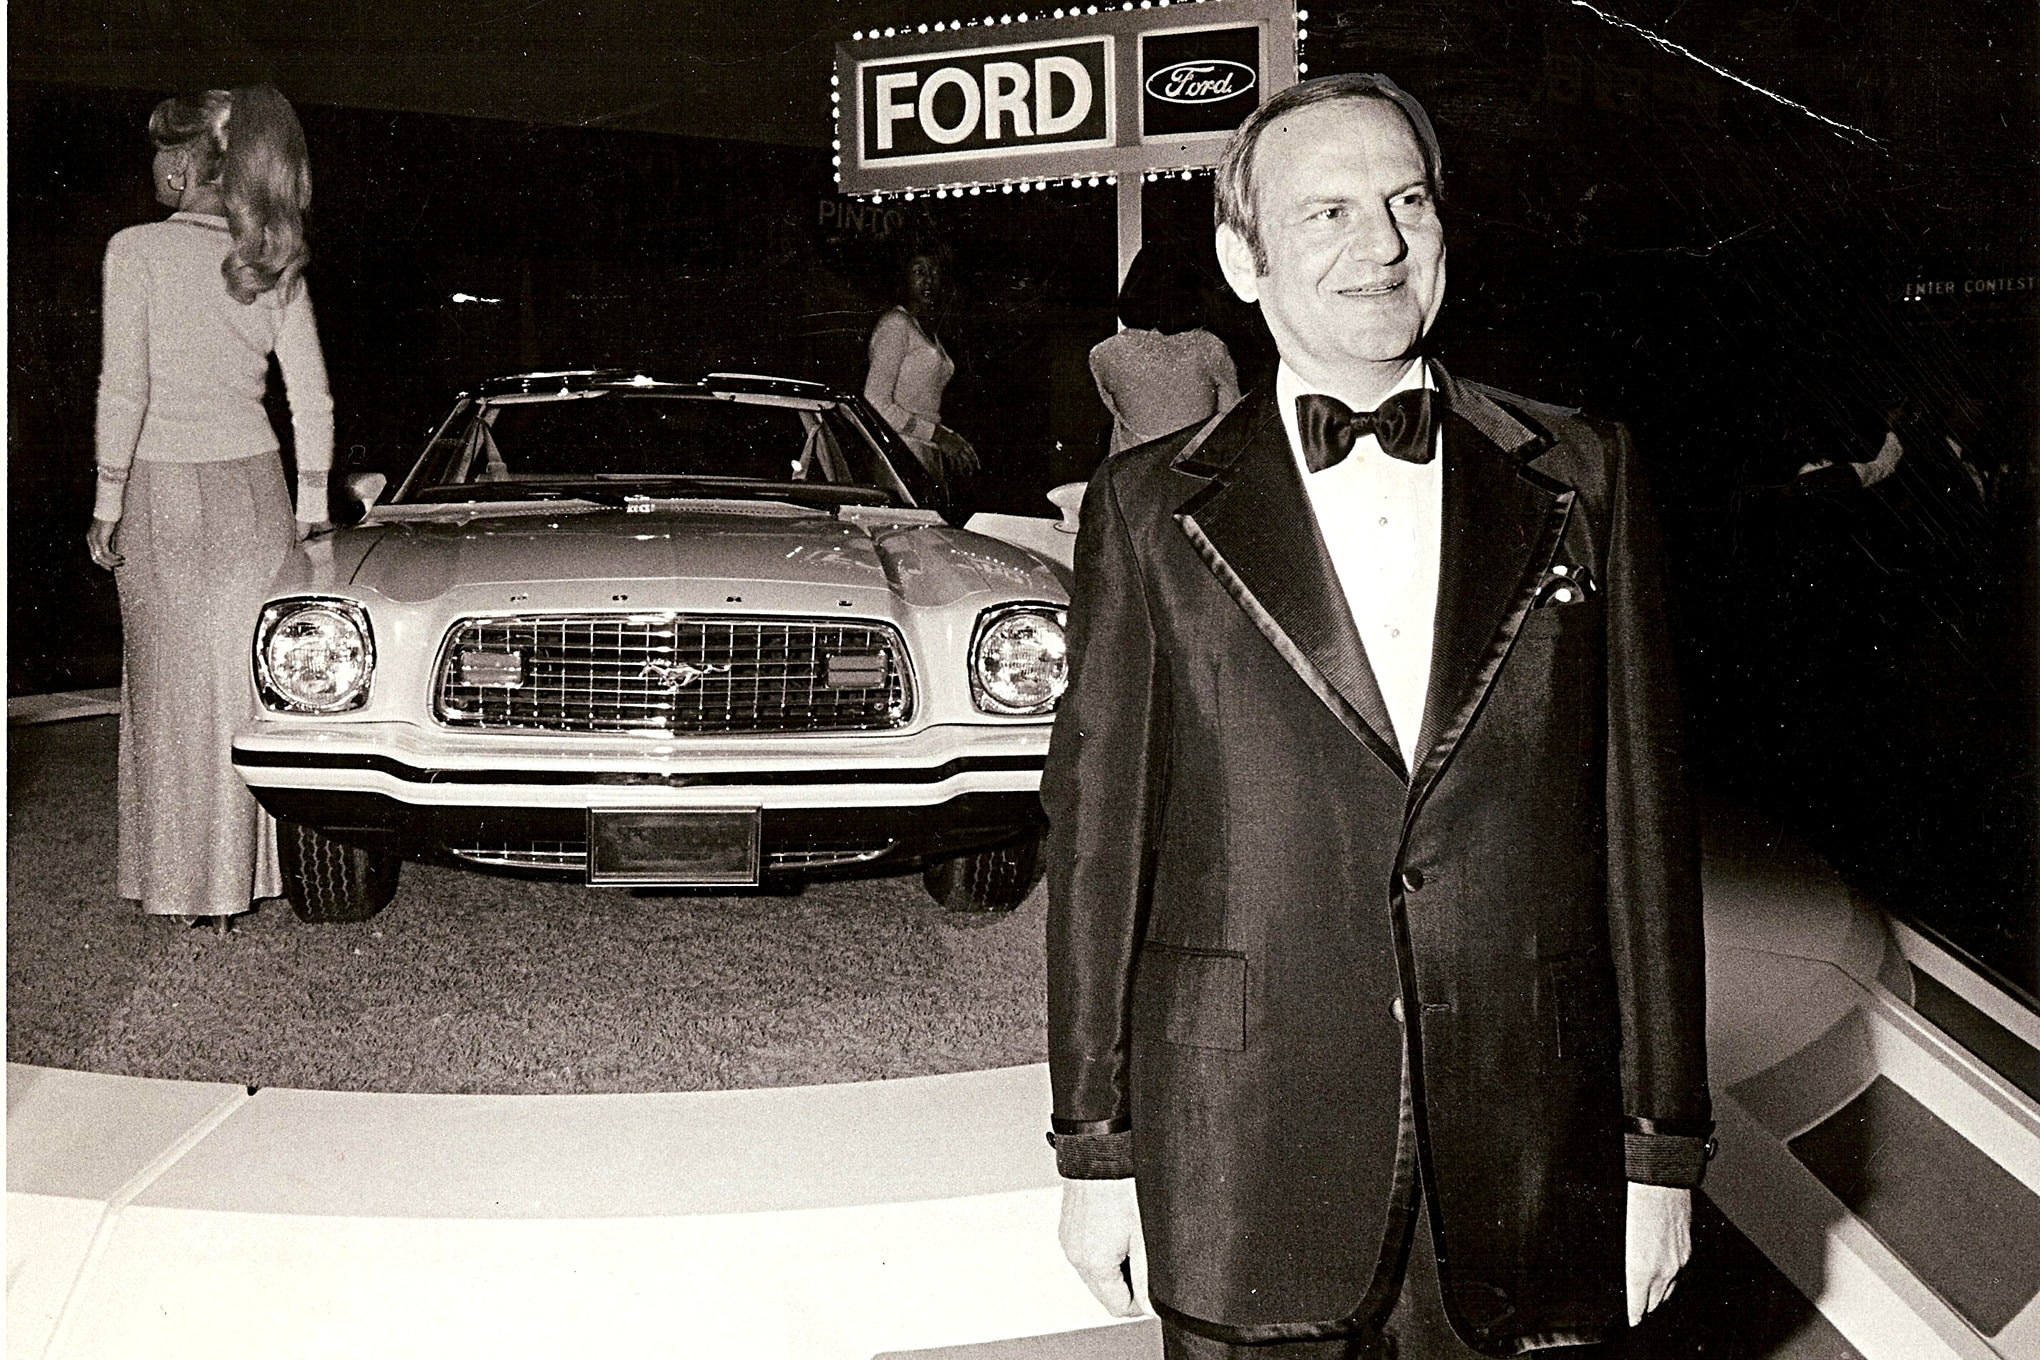 013 Lee Iacocca Remembering This American Icon 1 2